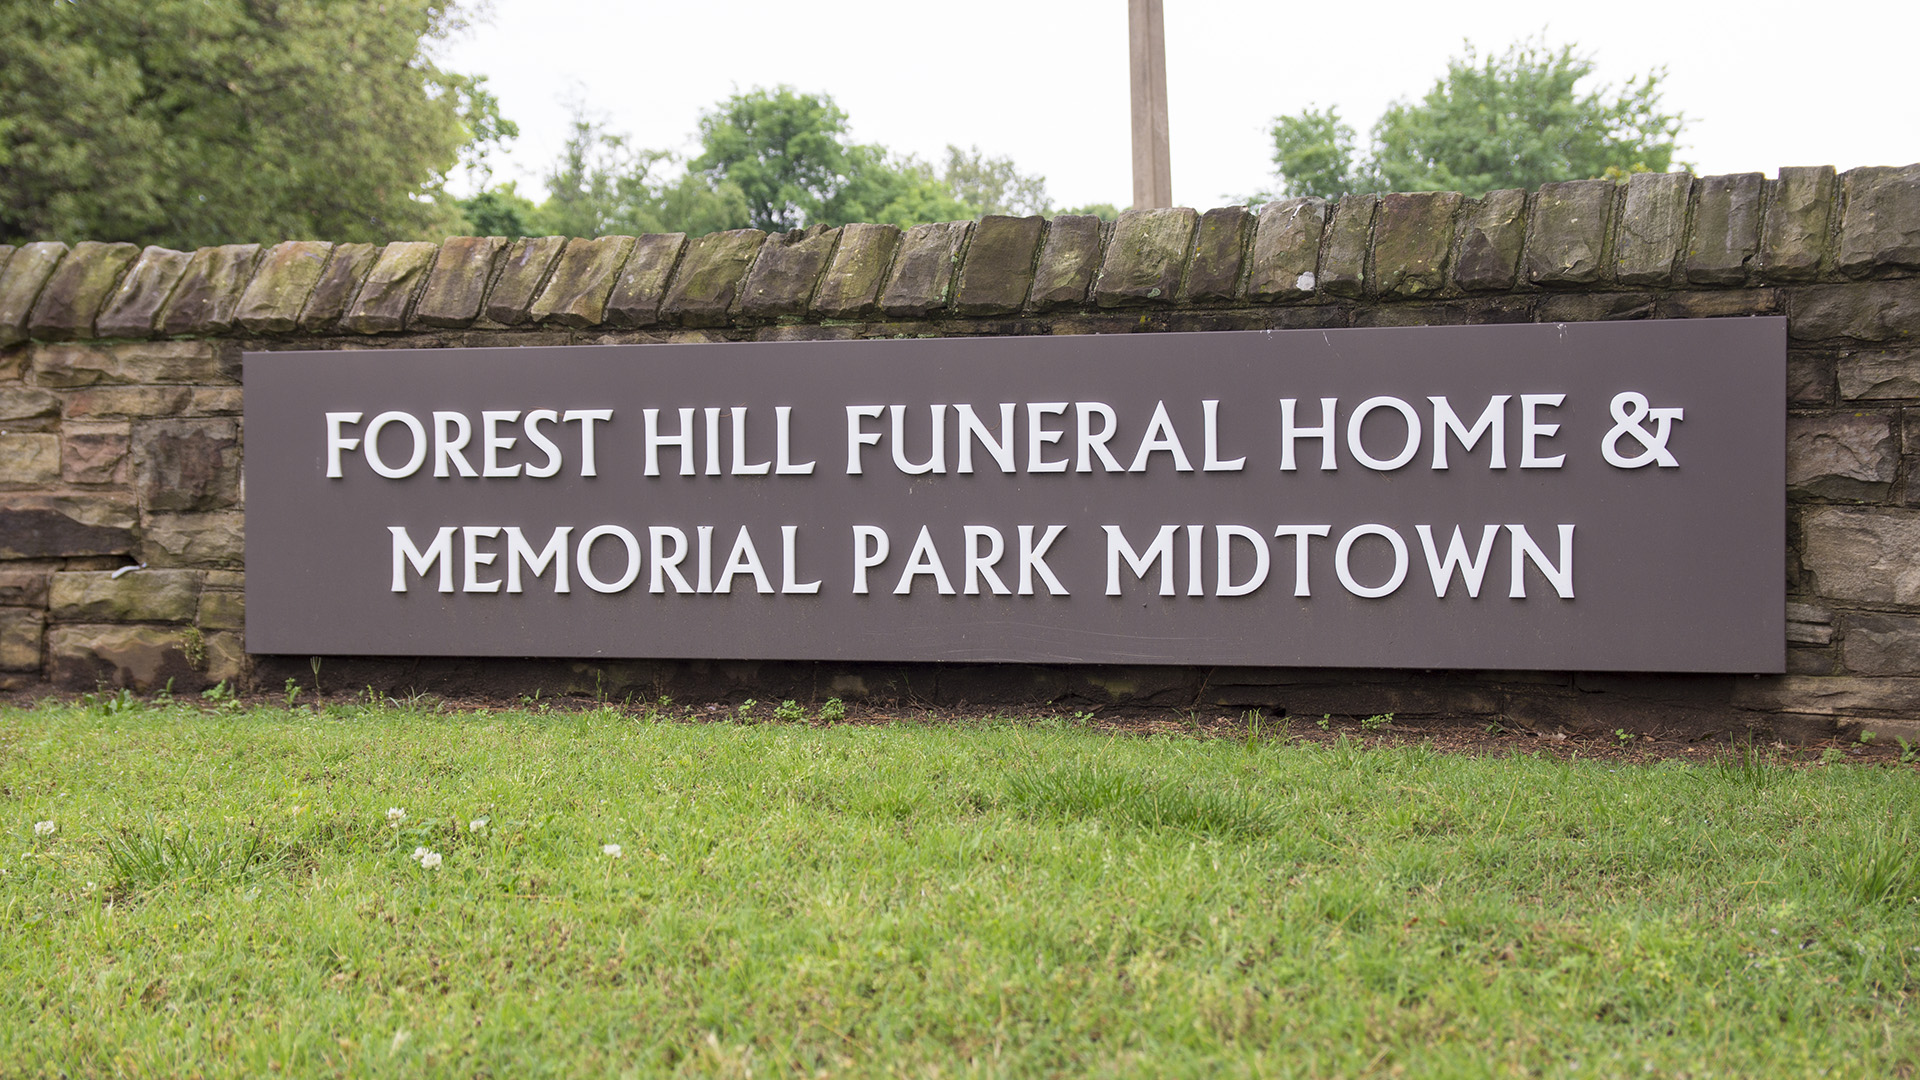 Forest Hill Cemetery Midtown Memphis